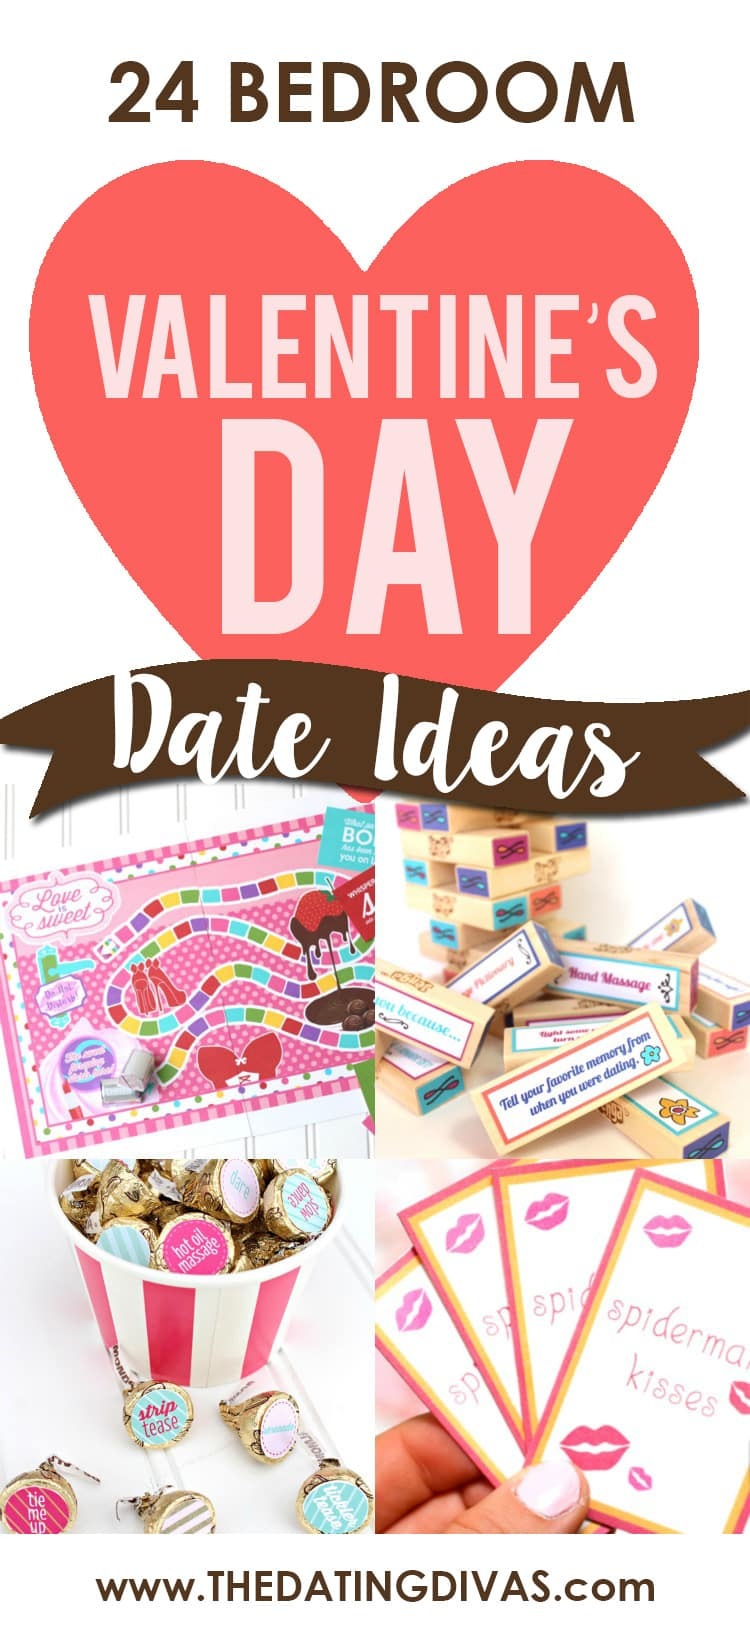 The Top 76 Valentine's Day Date Ideas - The Dating Divas